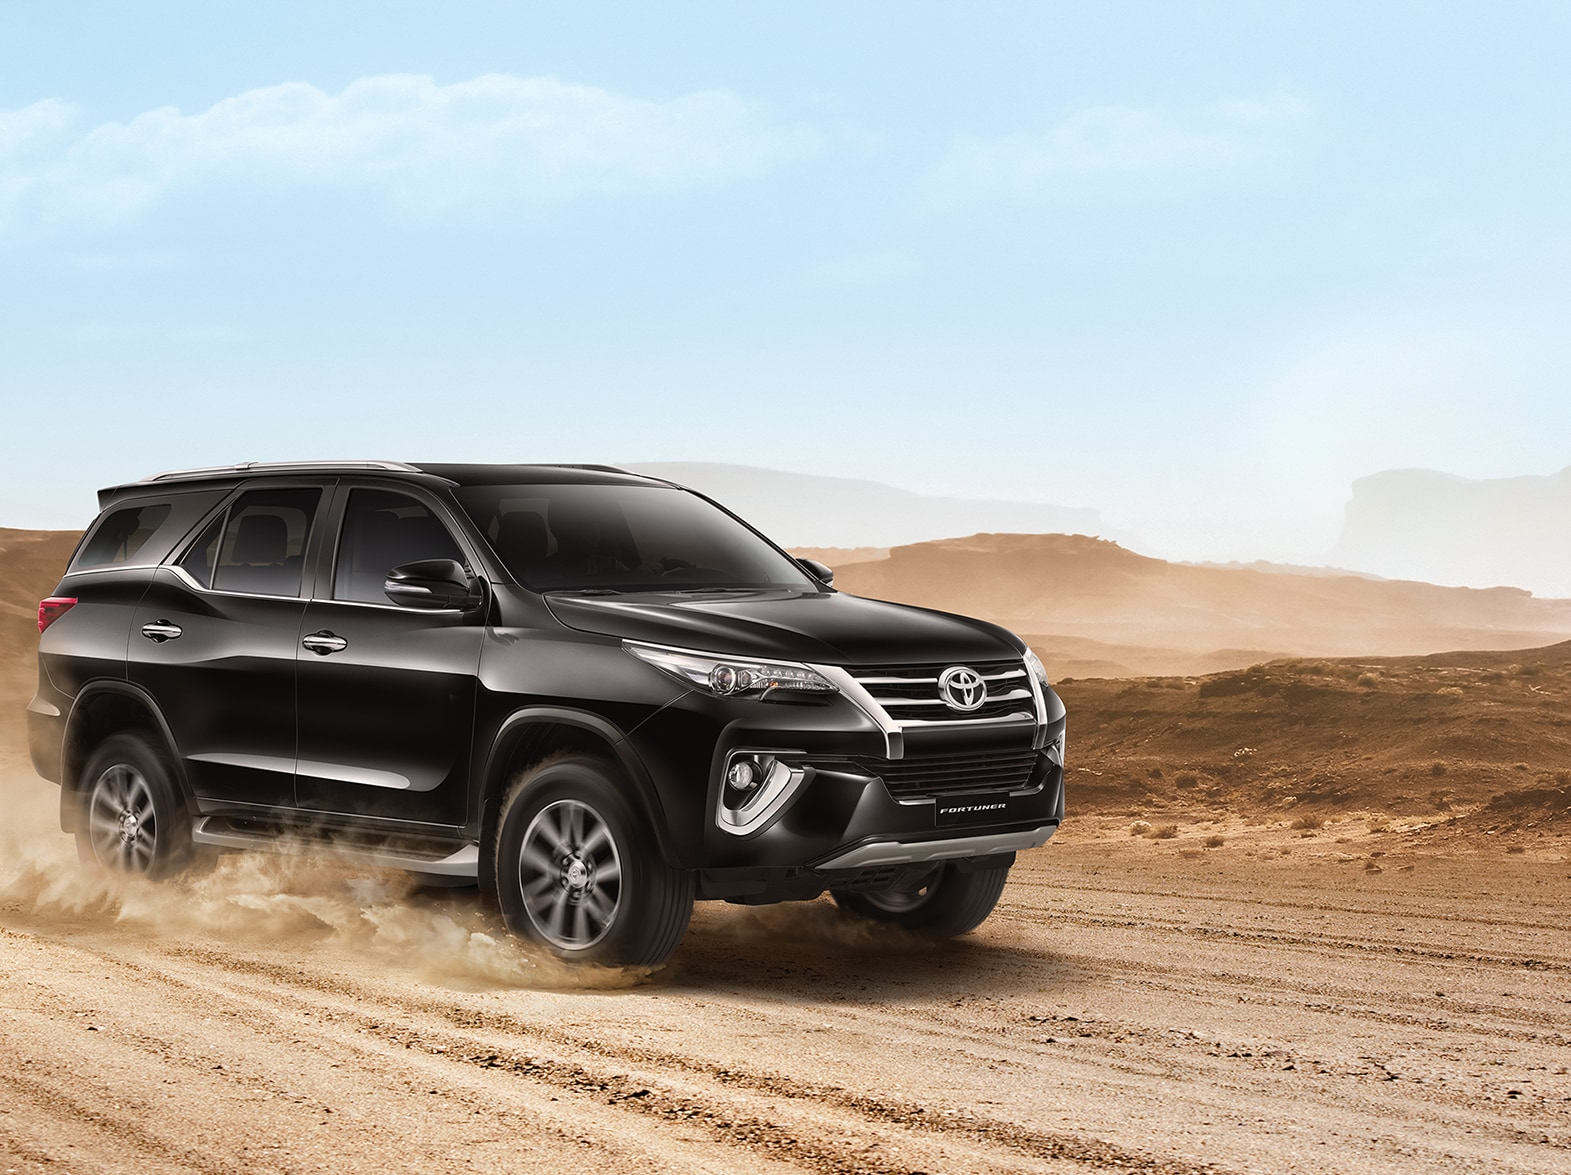 toyota fortuner hybrid 2020 wallpapers backgrounds